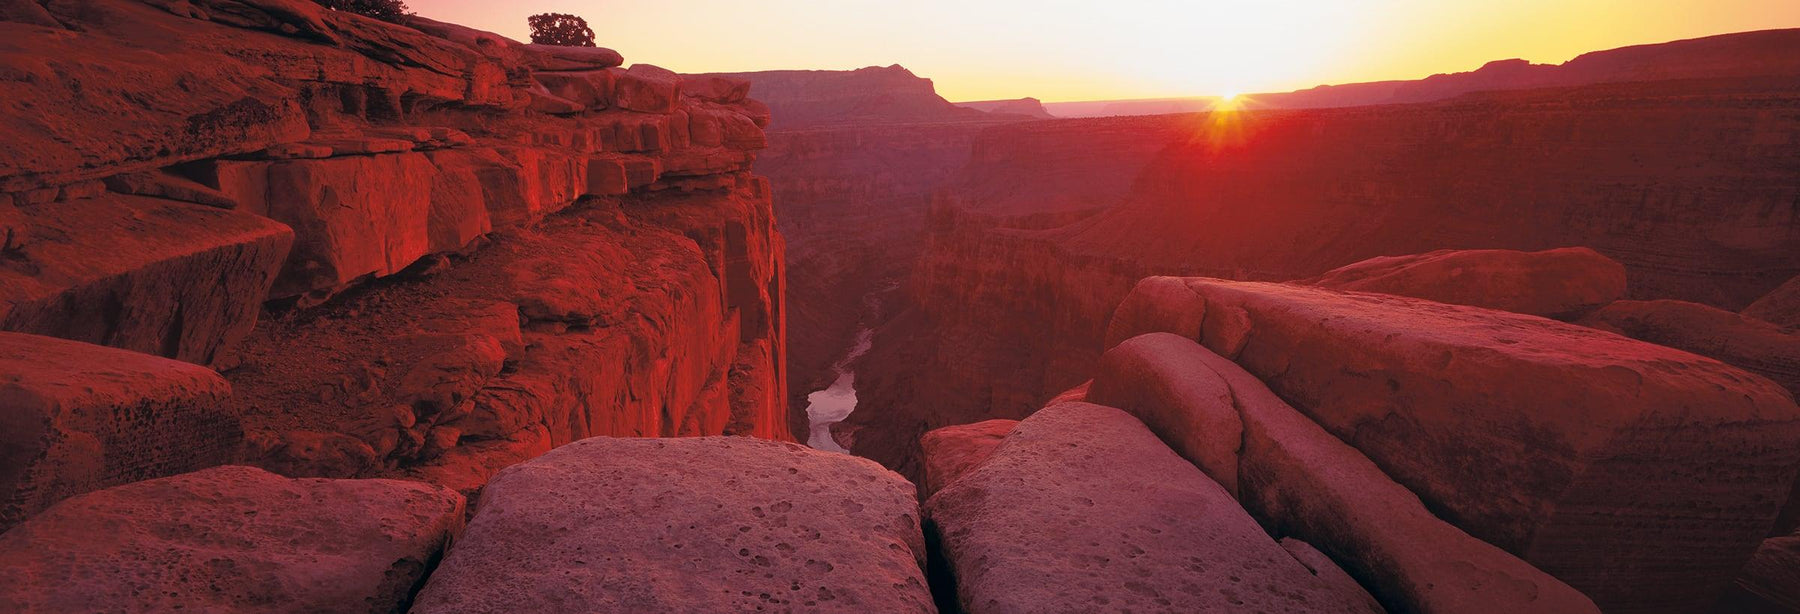 Edge of a rock cliff looking down at the Colorado River at the bottom of the Grand Canyon Arizona at sunrise